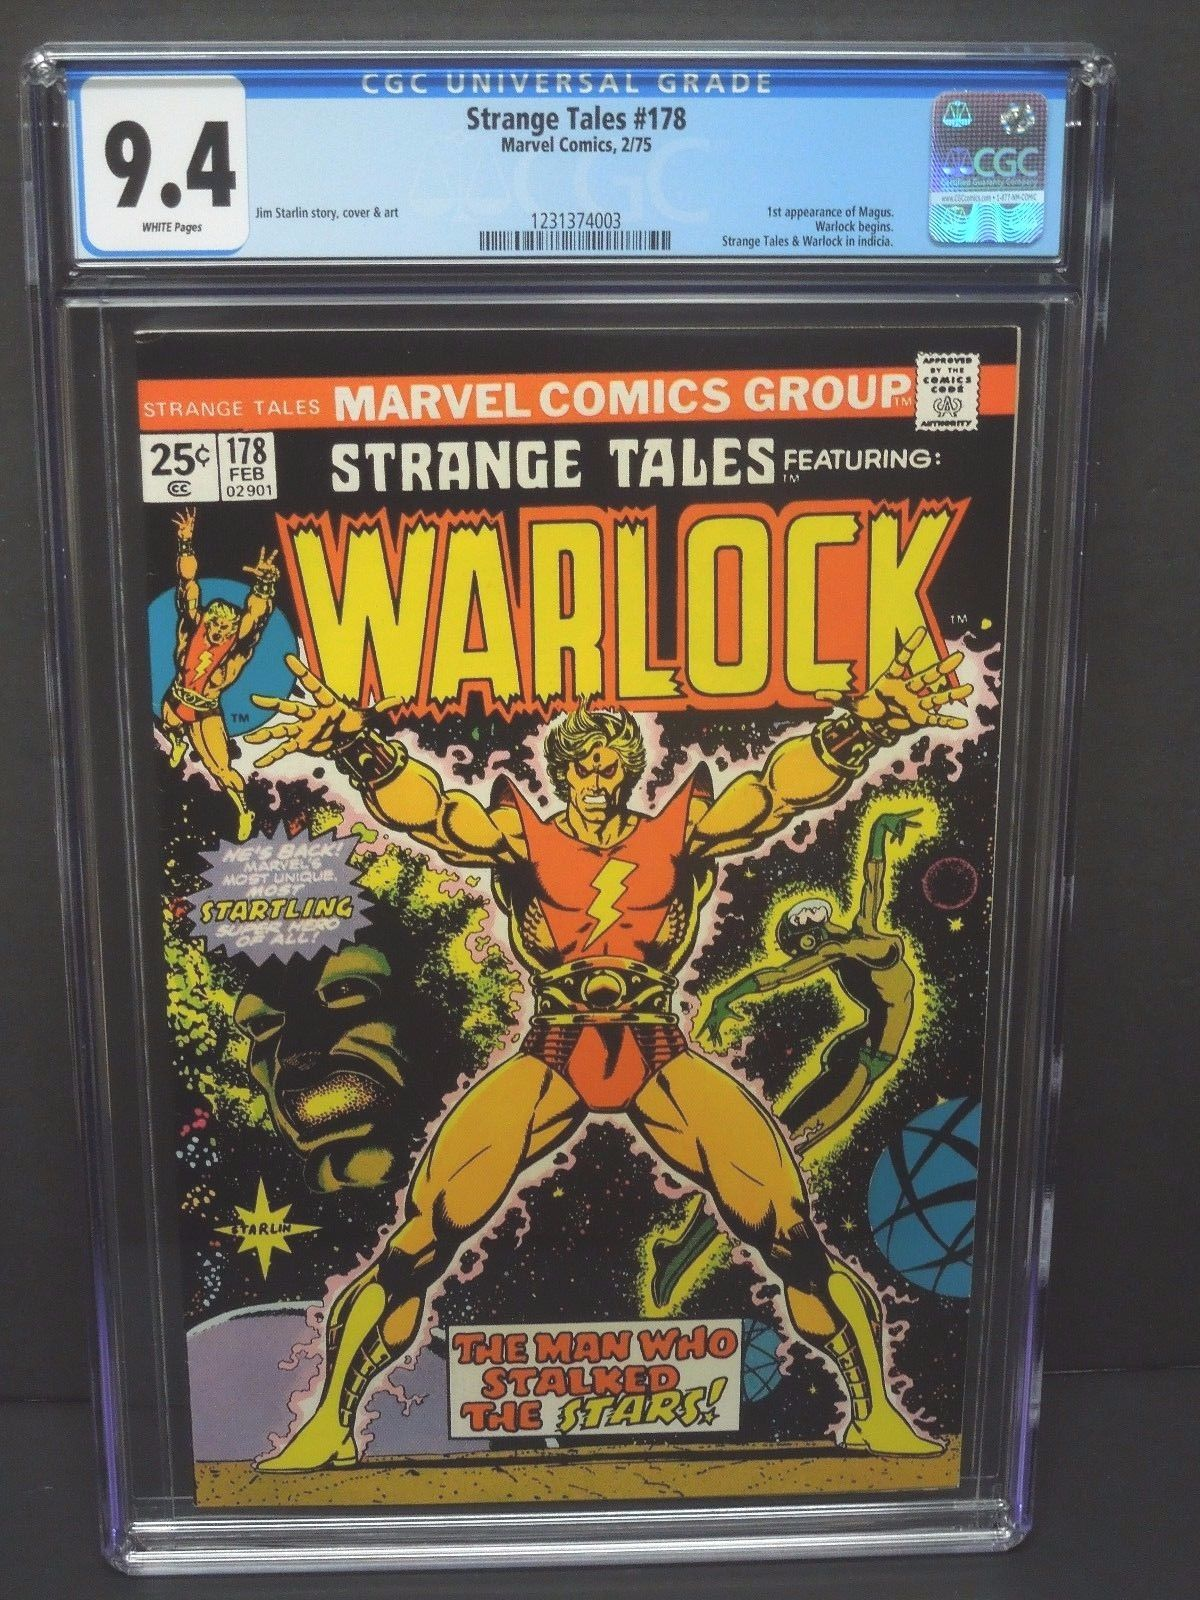 MARVEL COMICS STRANGE TALES #178 1975 CGC 9.4 WHITE PAGES 1st WARLOCK ISSUE